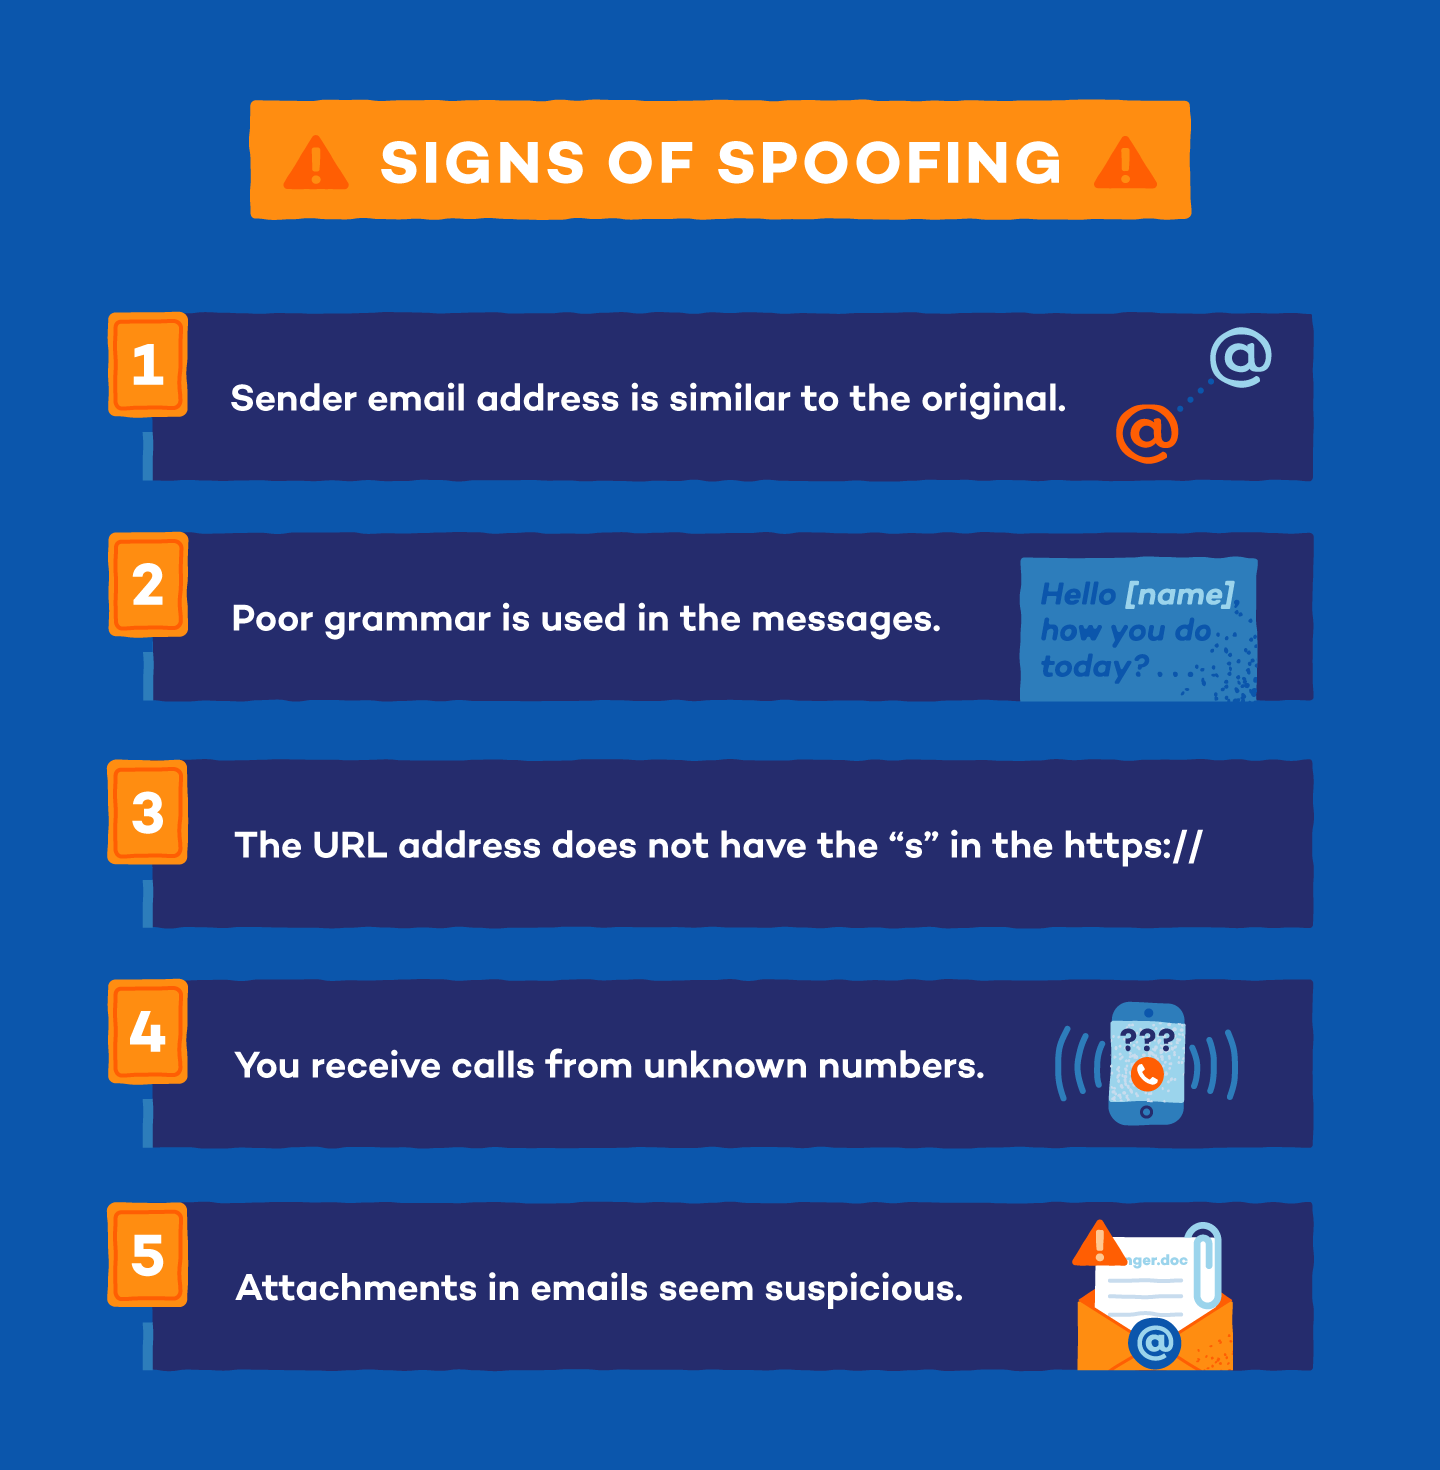 signs-of-spoofing